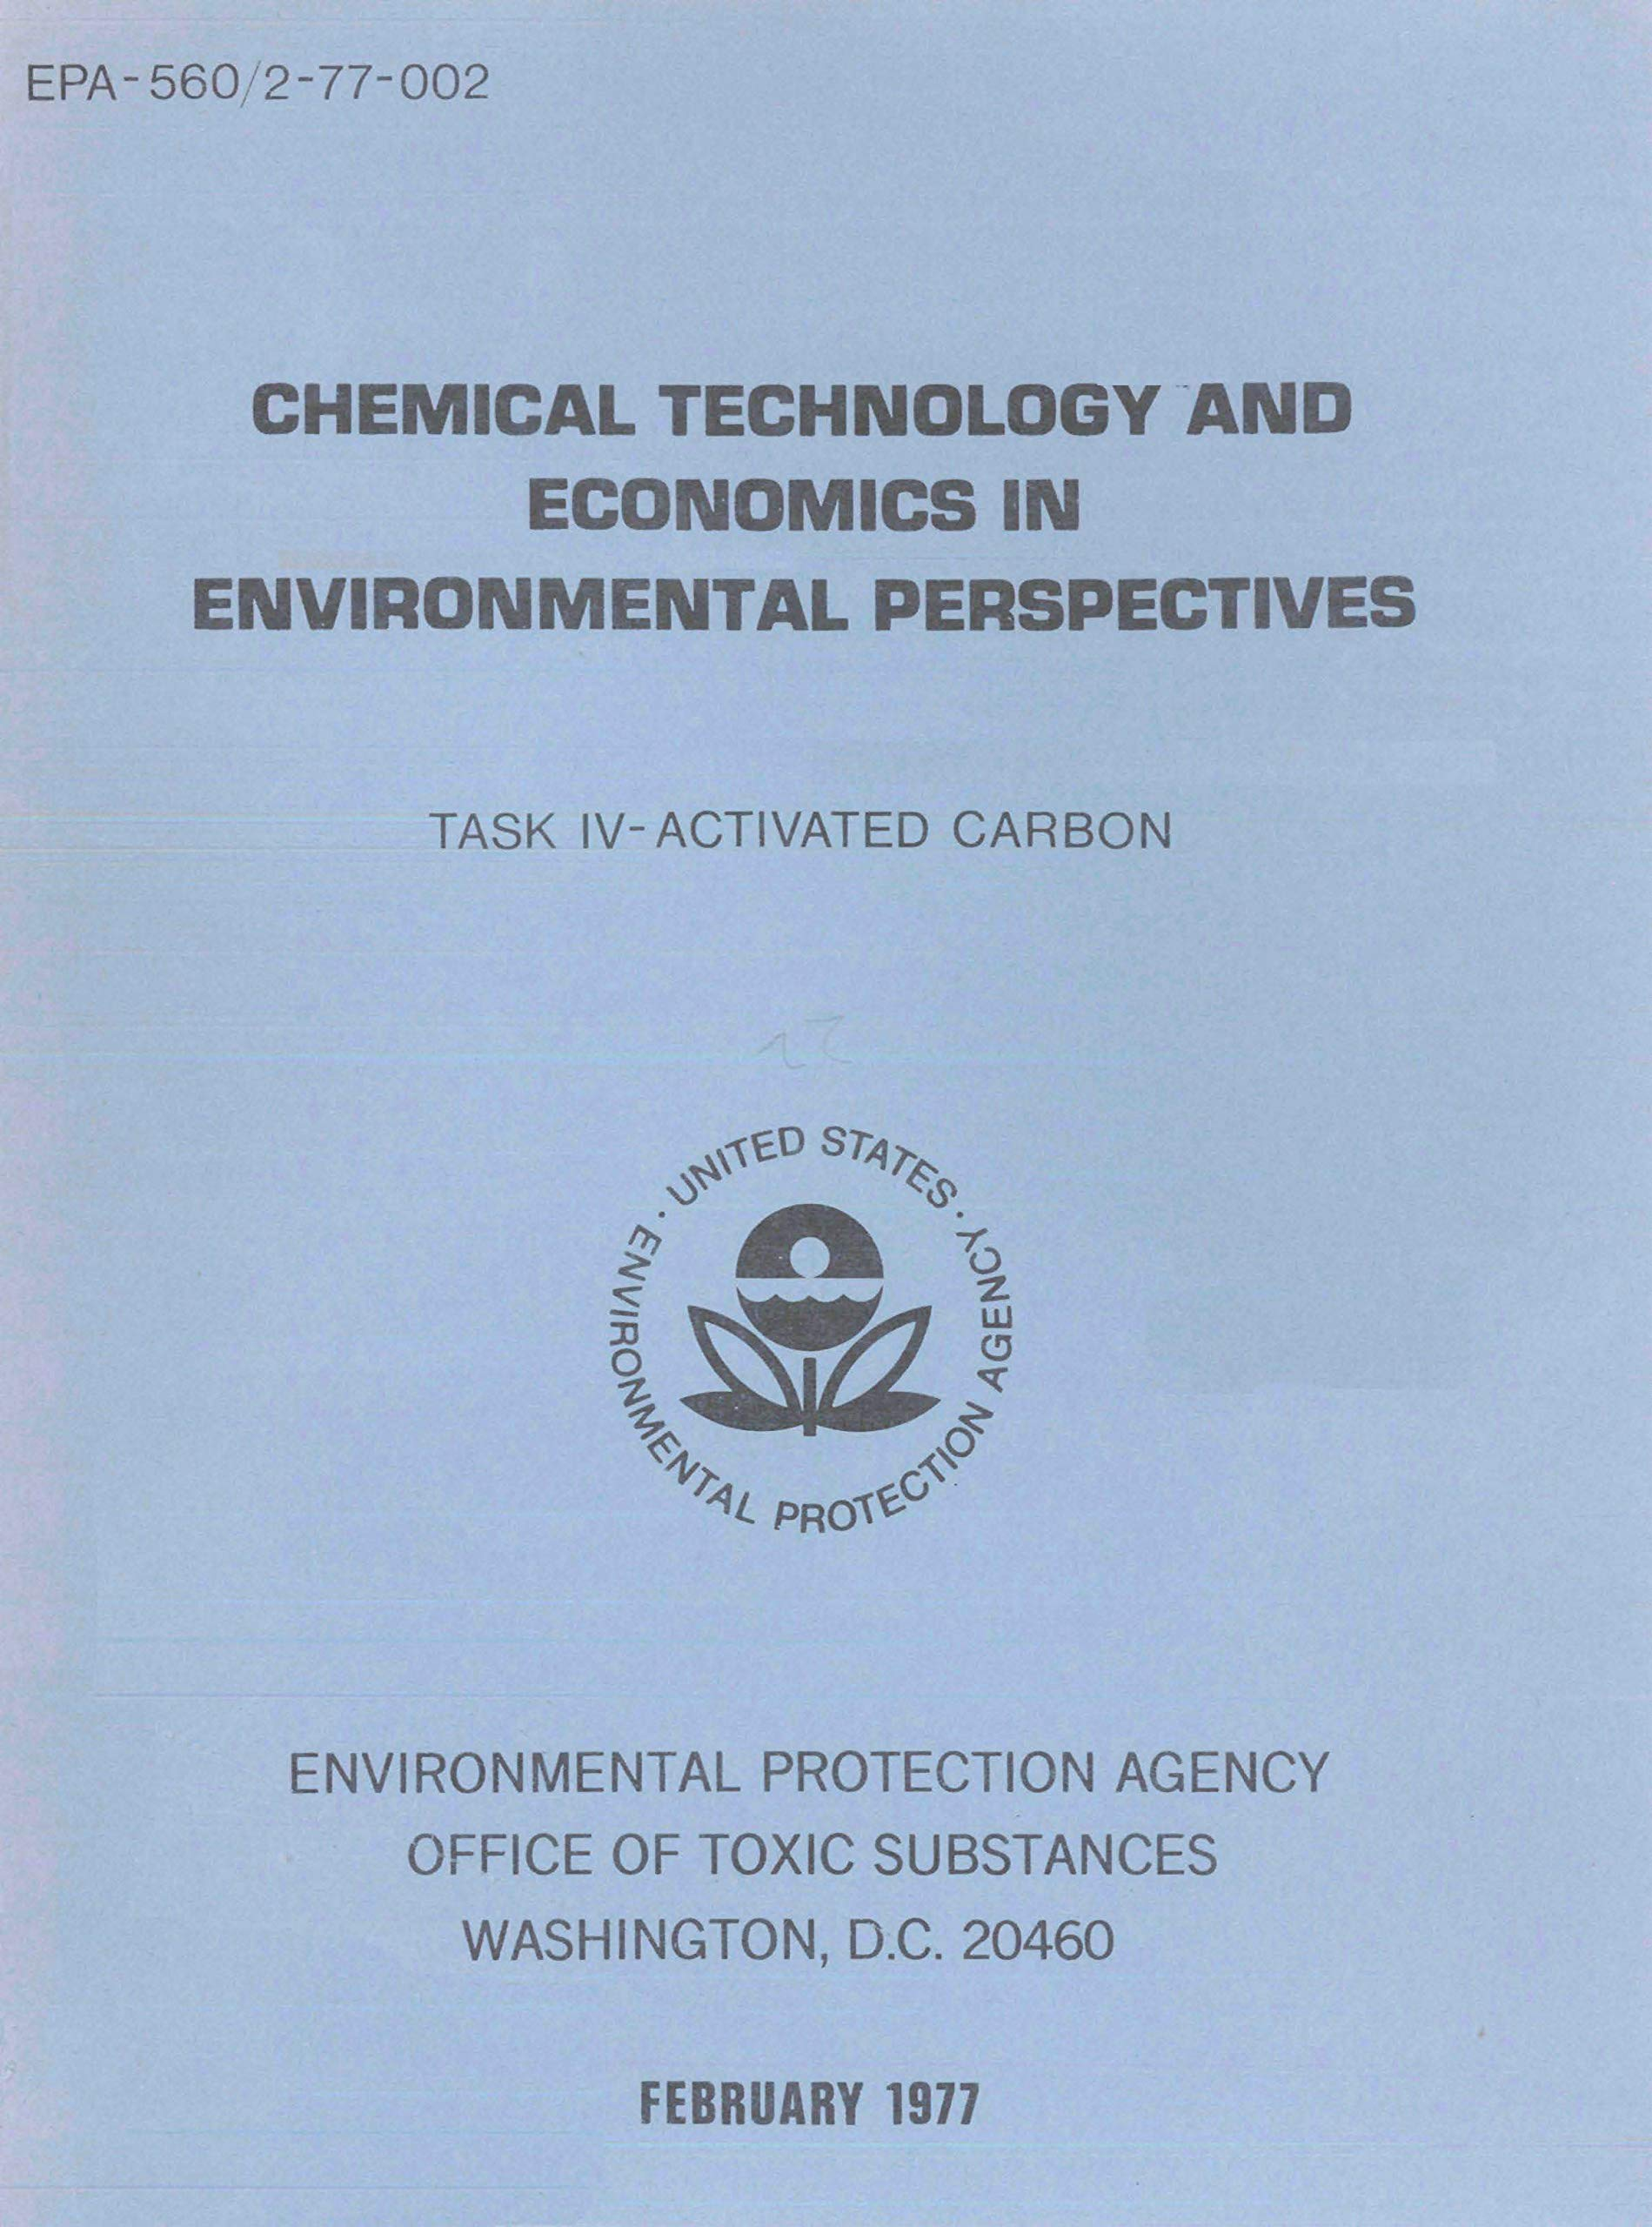 Chemical Technology and Economics in Environmental Perspectives: Task IV - Activated Carbon